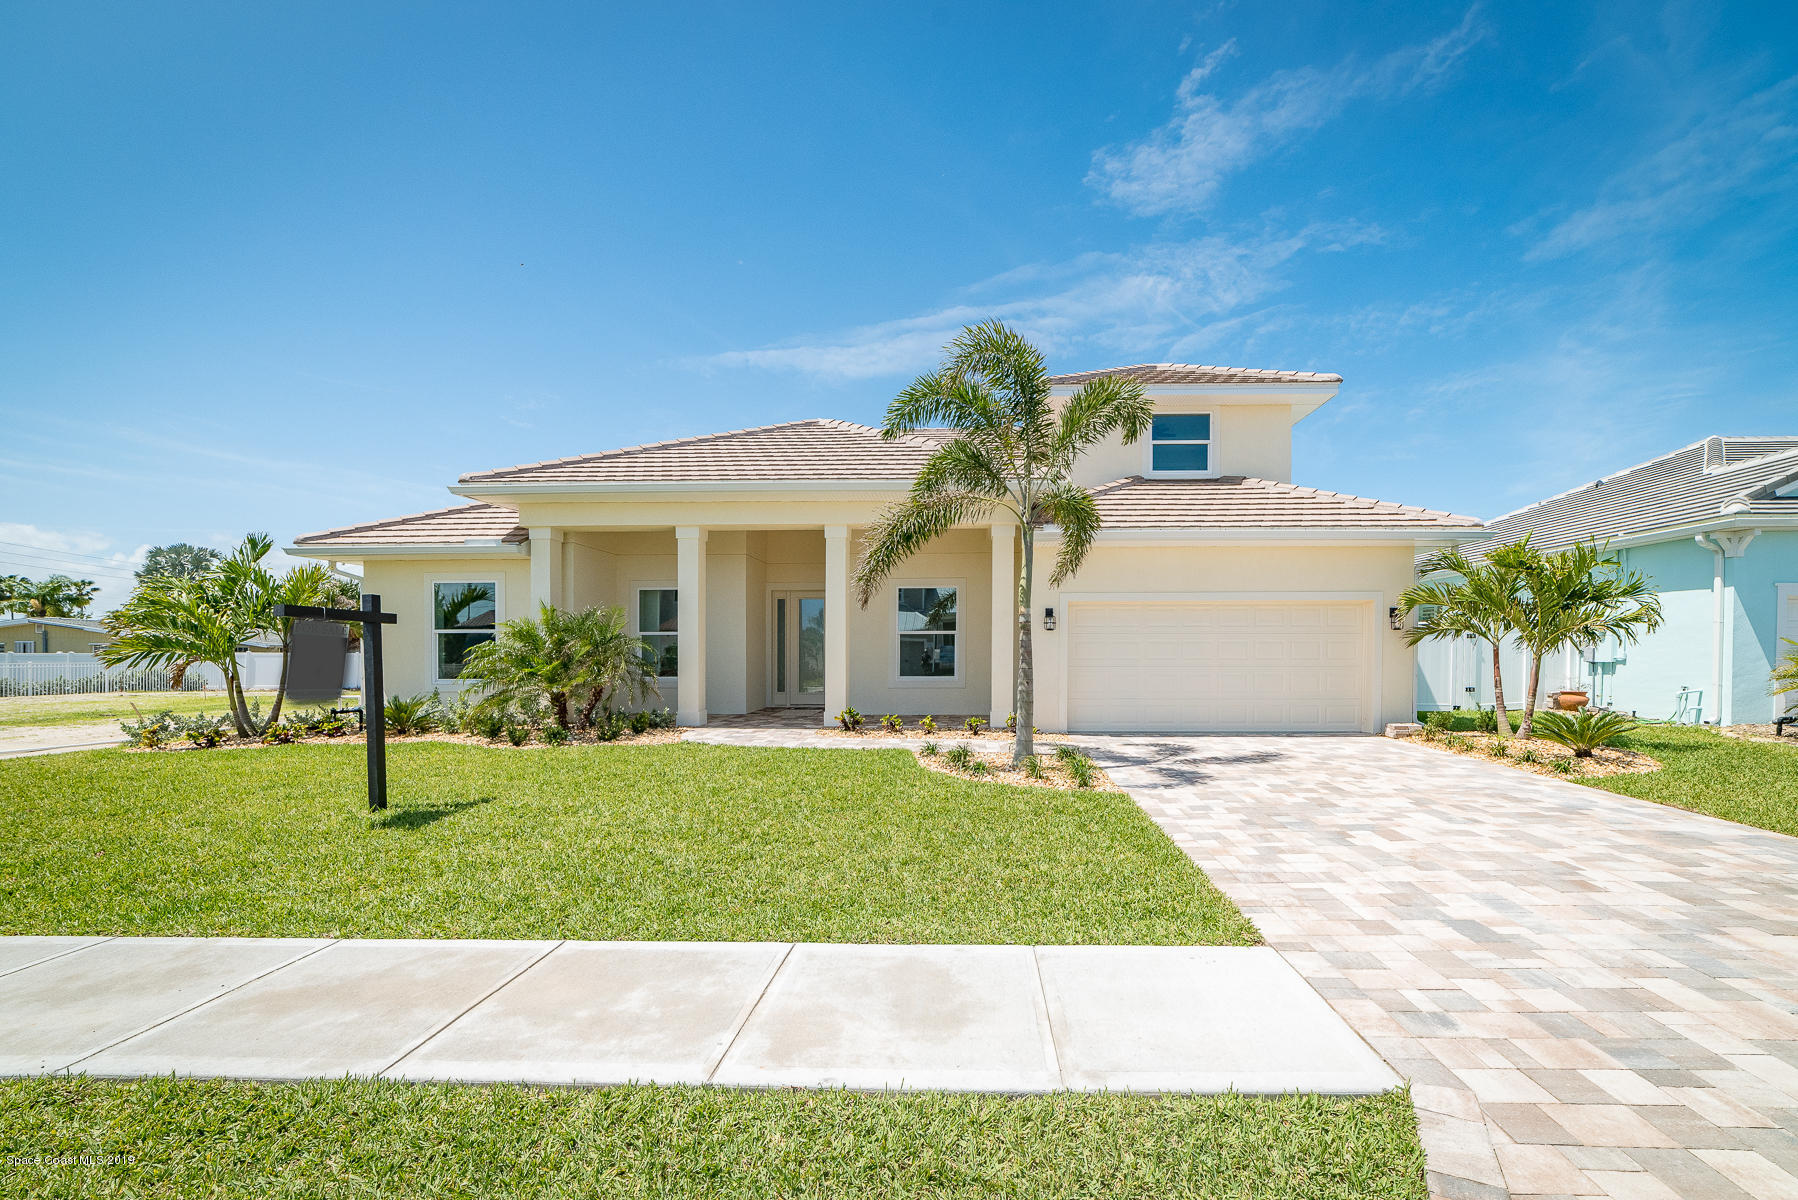 Single Family Home for Sale at 120 Enclave Indian Harbour Beach, Florida 32937 United States